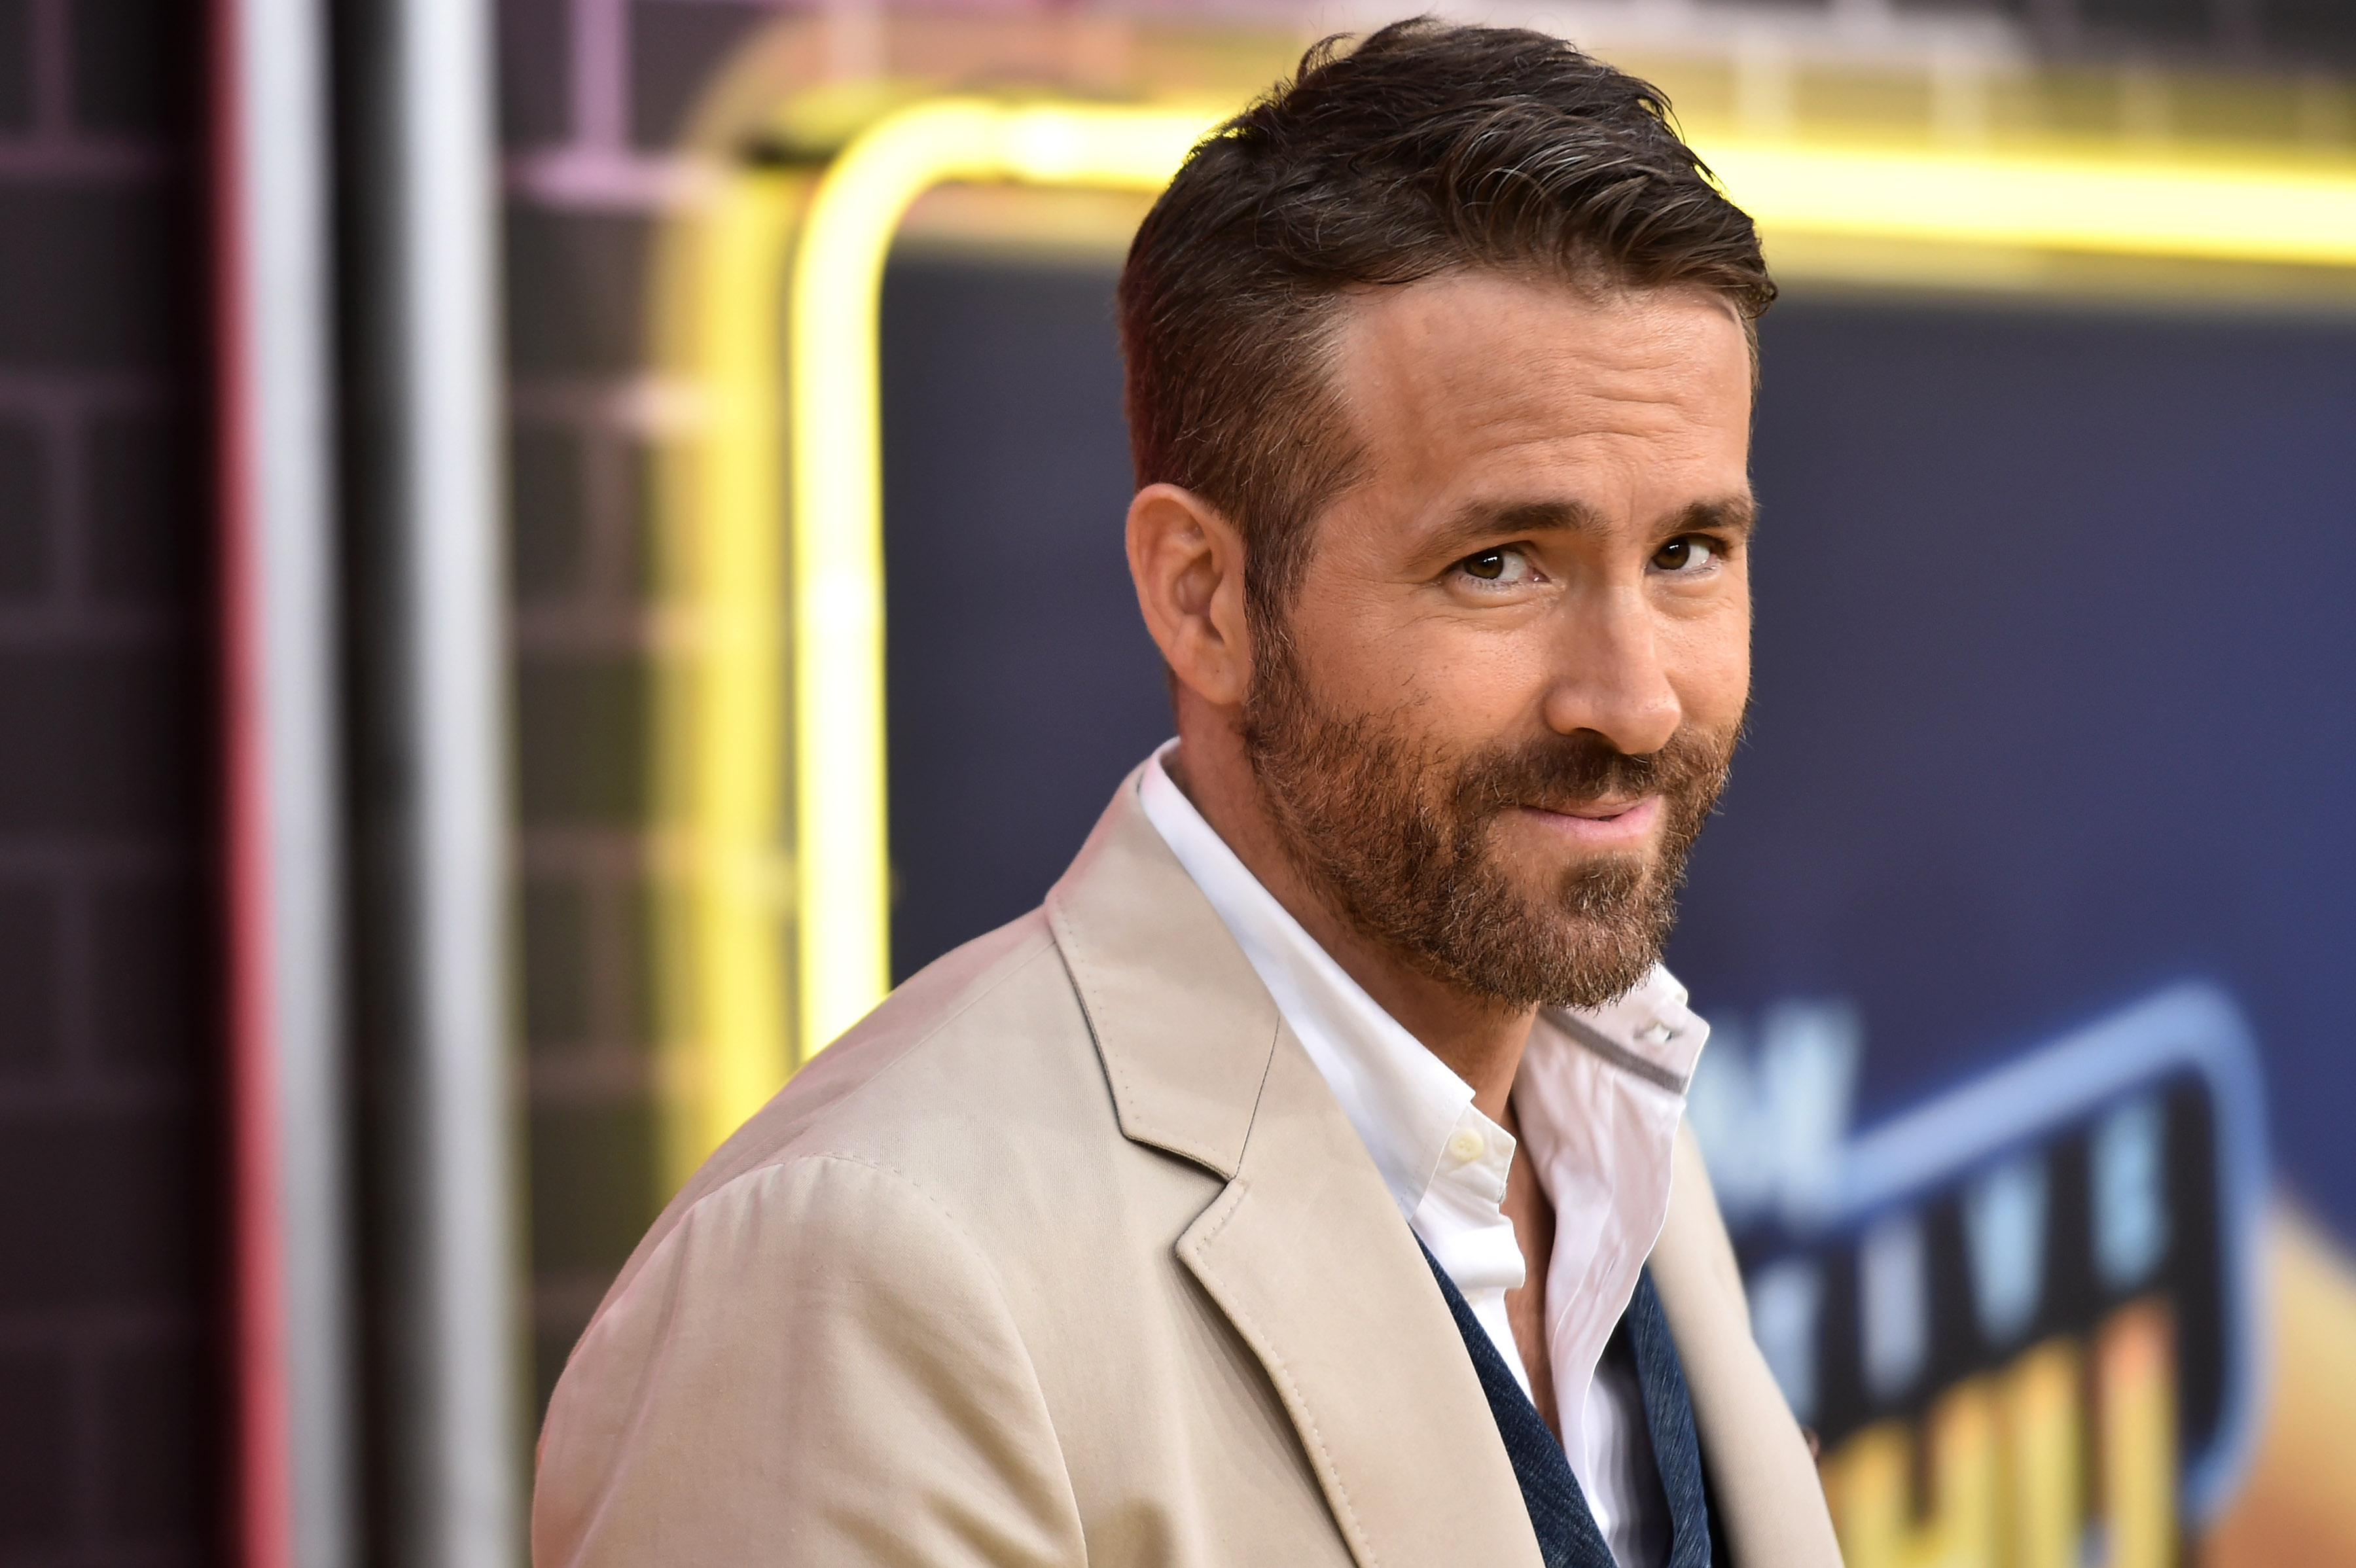 Ryan Reynolds attends the premiere of  Pokemon: Detective Pikachu  in Times Square on May 2, 2019 in New York City.